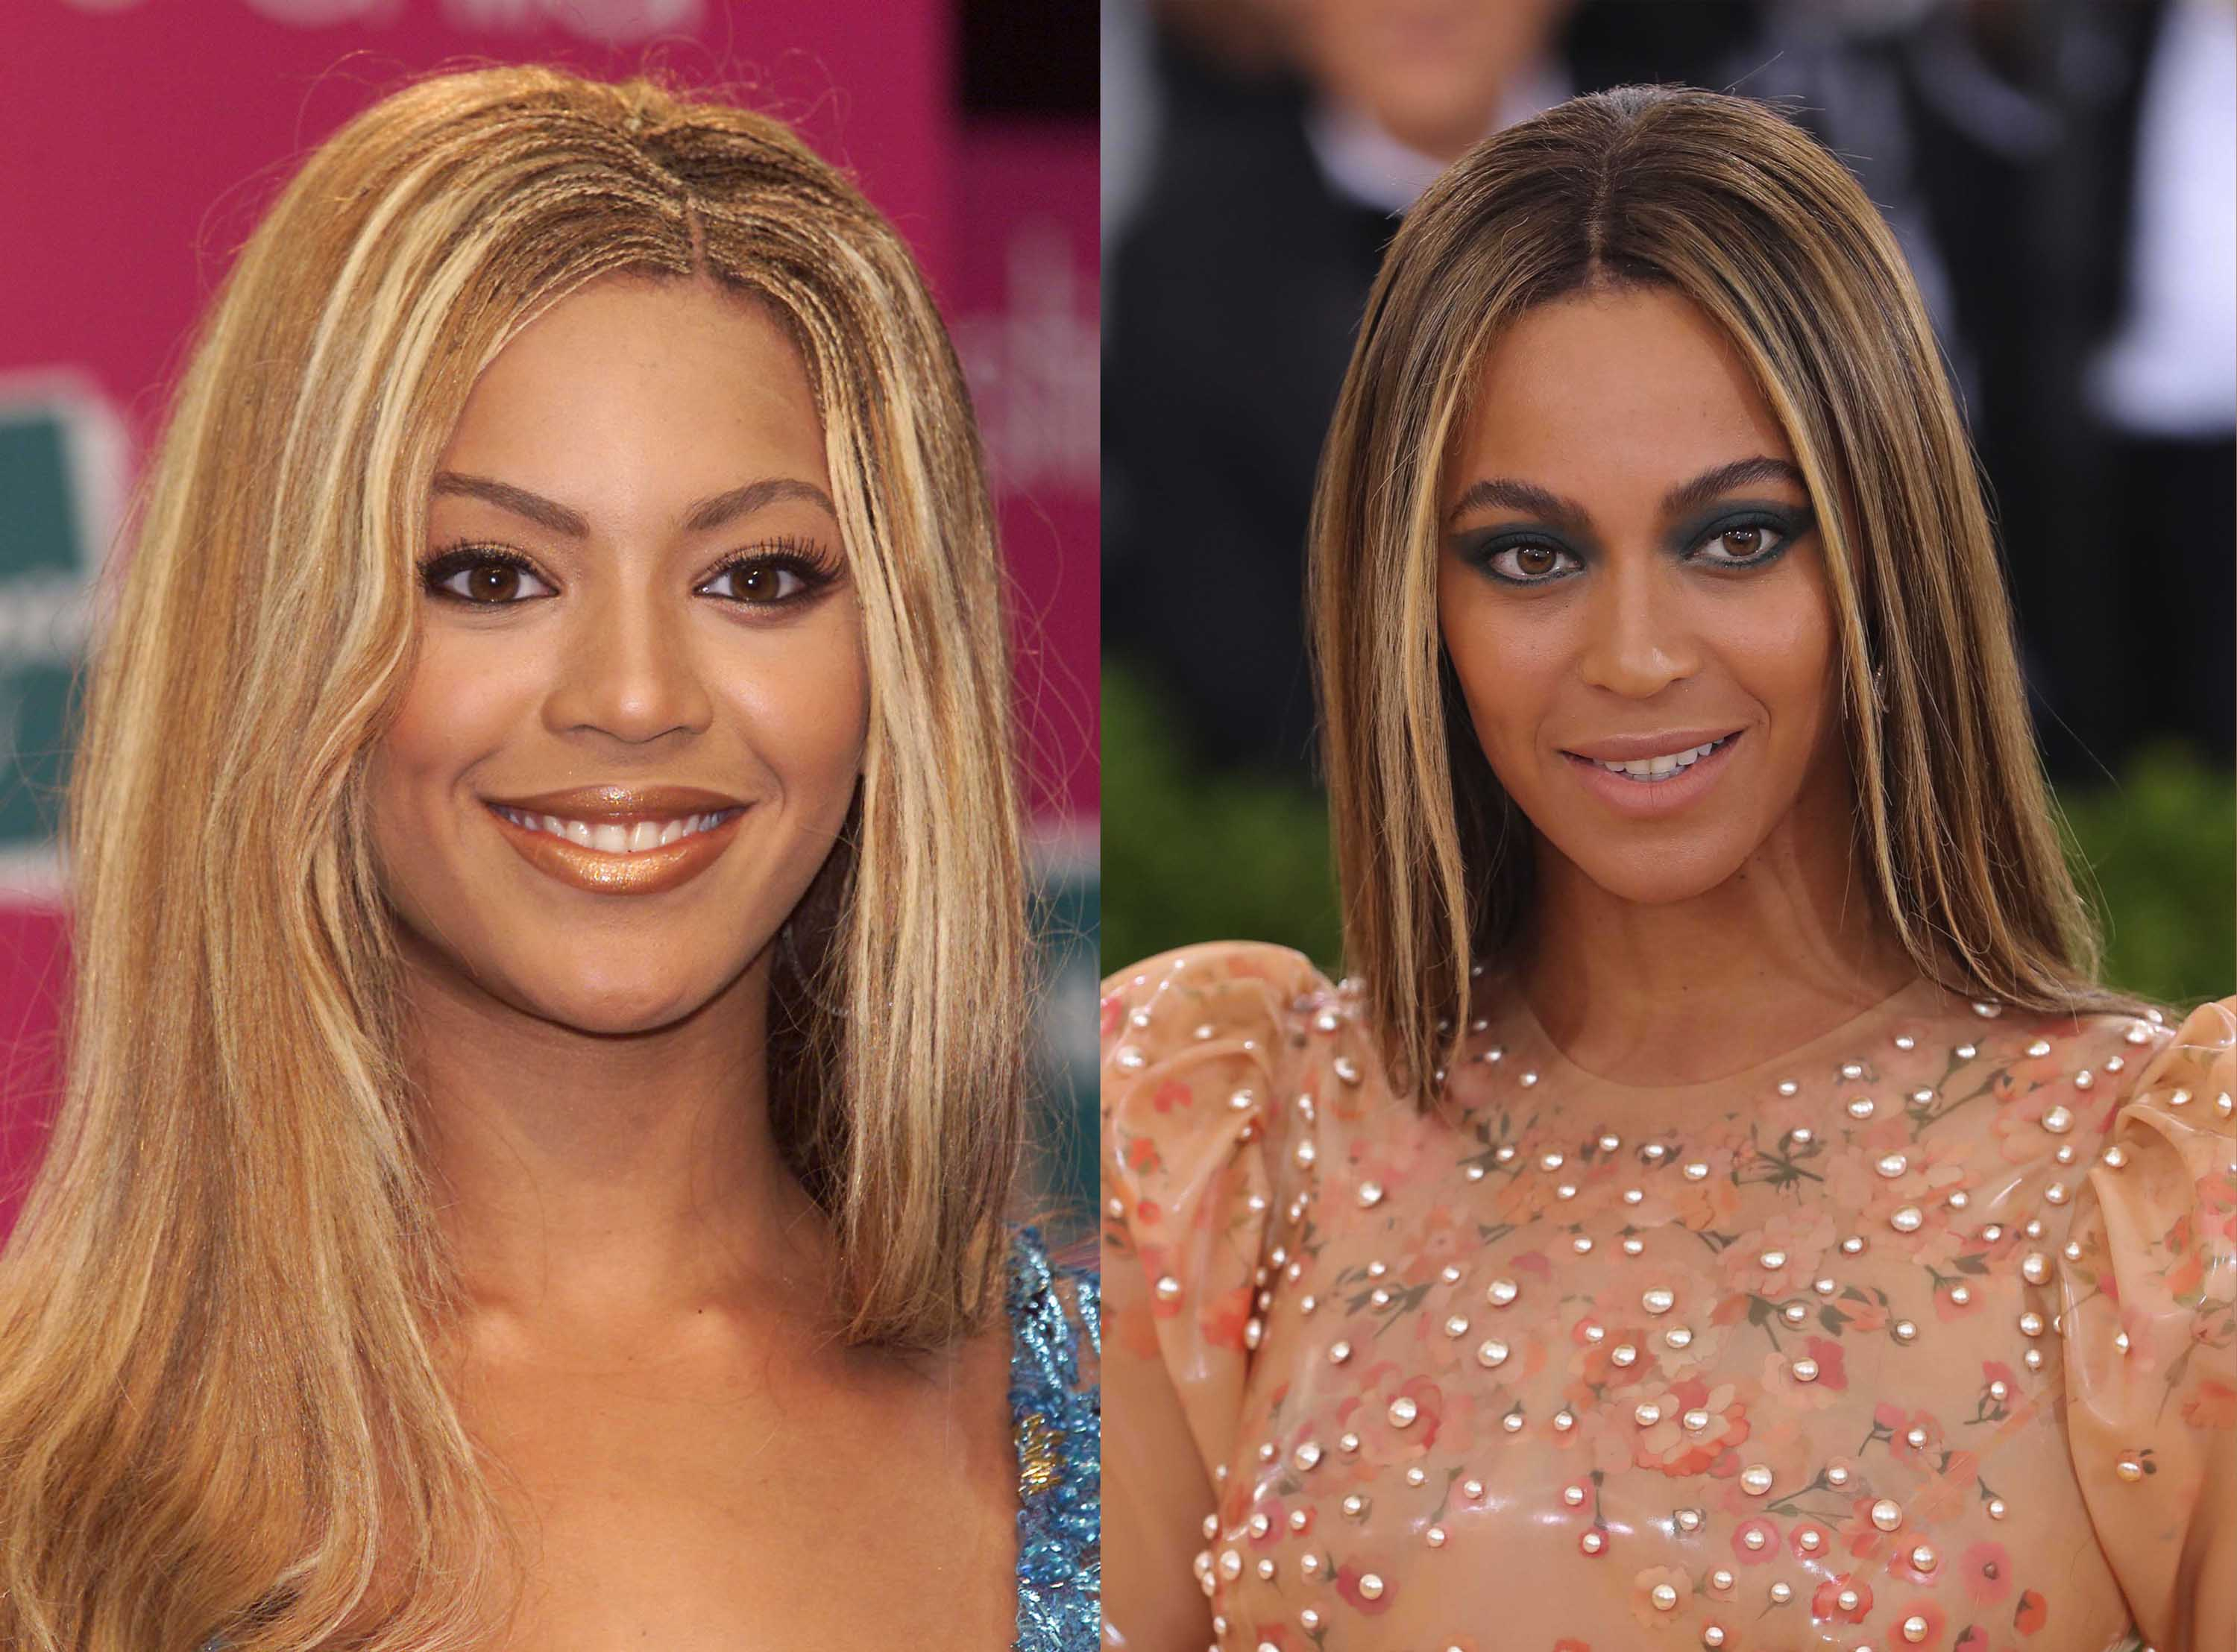 black celebrity hair: All Things Hair - IMAGE - Beyoncé hair highlights Black History Month